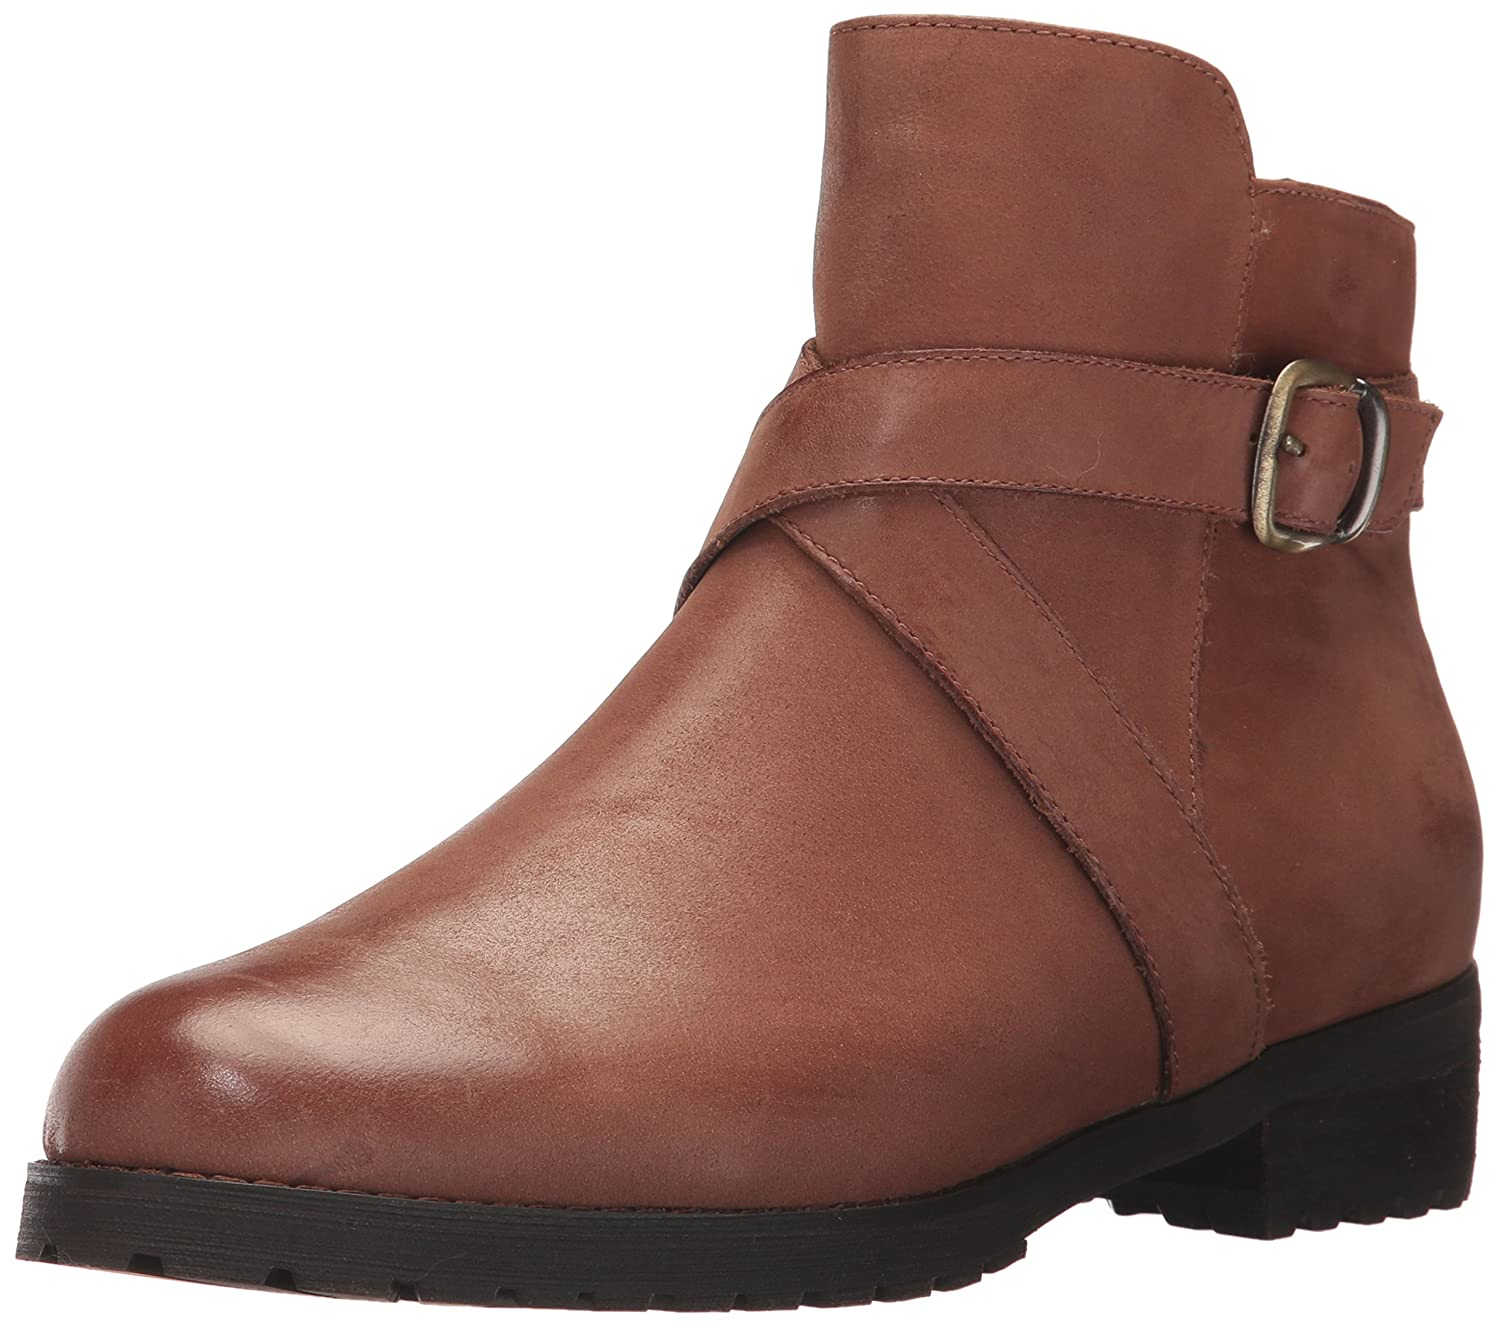 Blondo Women's Varta Waterproof Ankle Bootie B071P1BYH8 9 B(M) US|Cognac